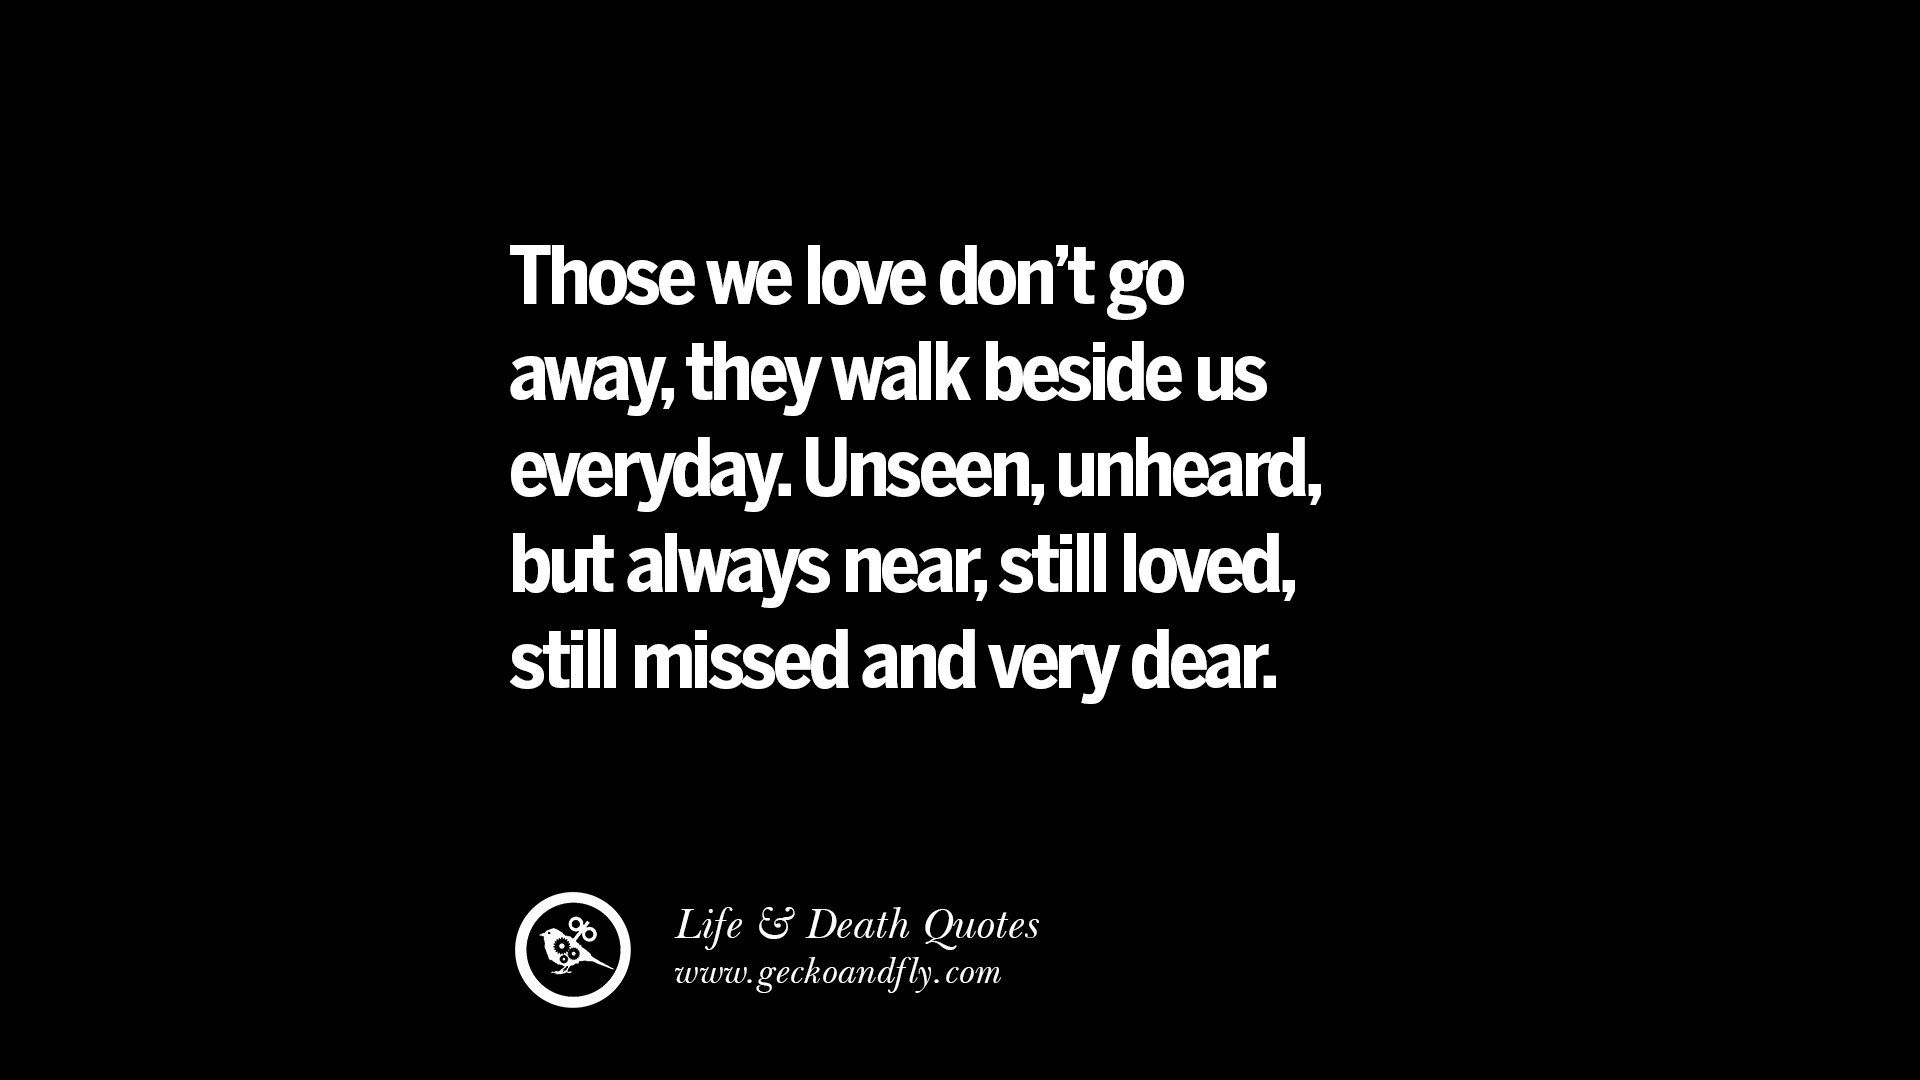 Quotes About Life And Death 20 Inspirational Quotes On Life Death And Losing Someone